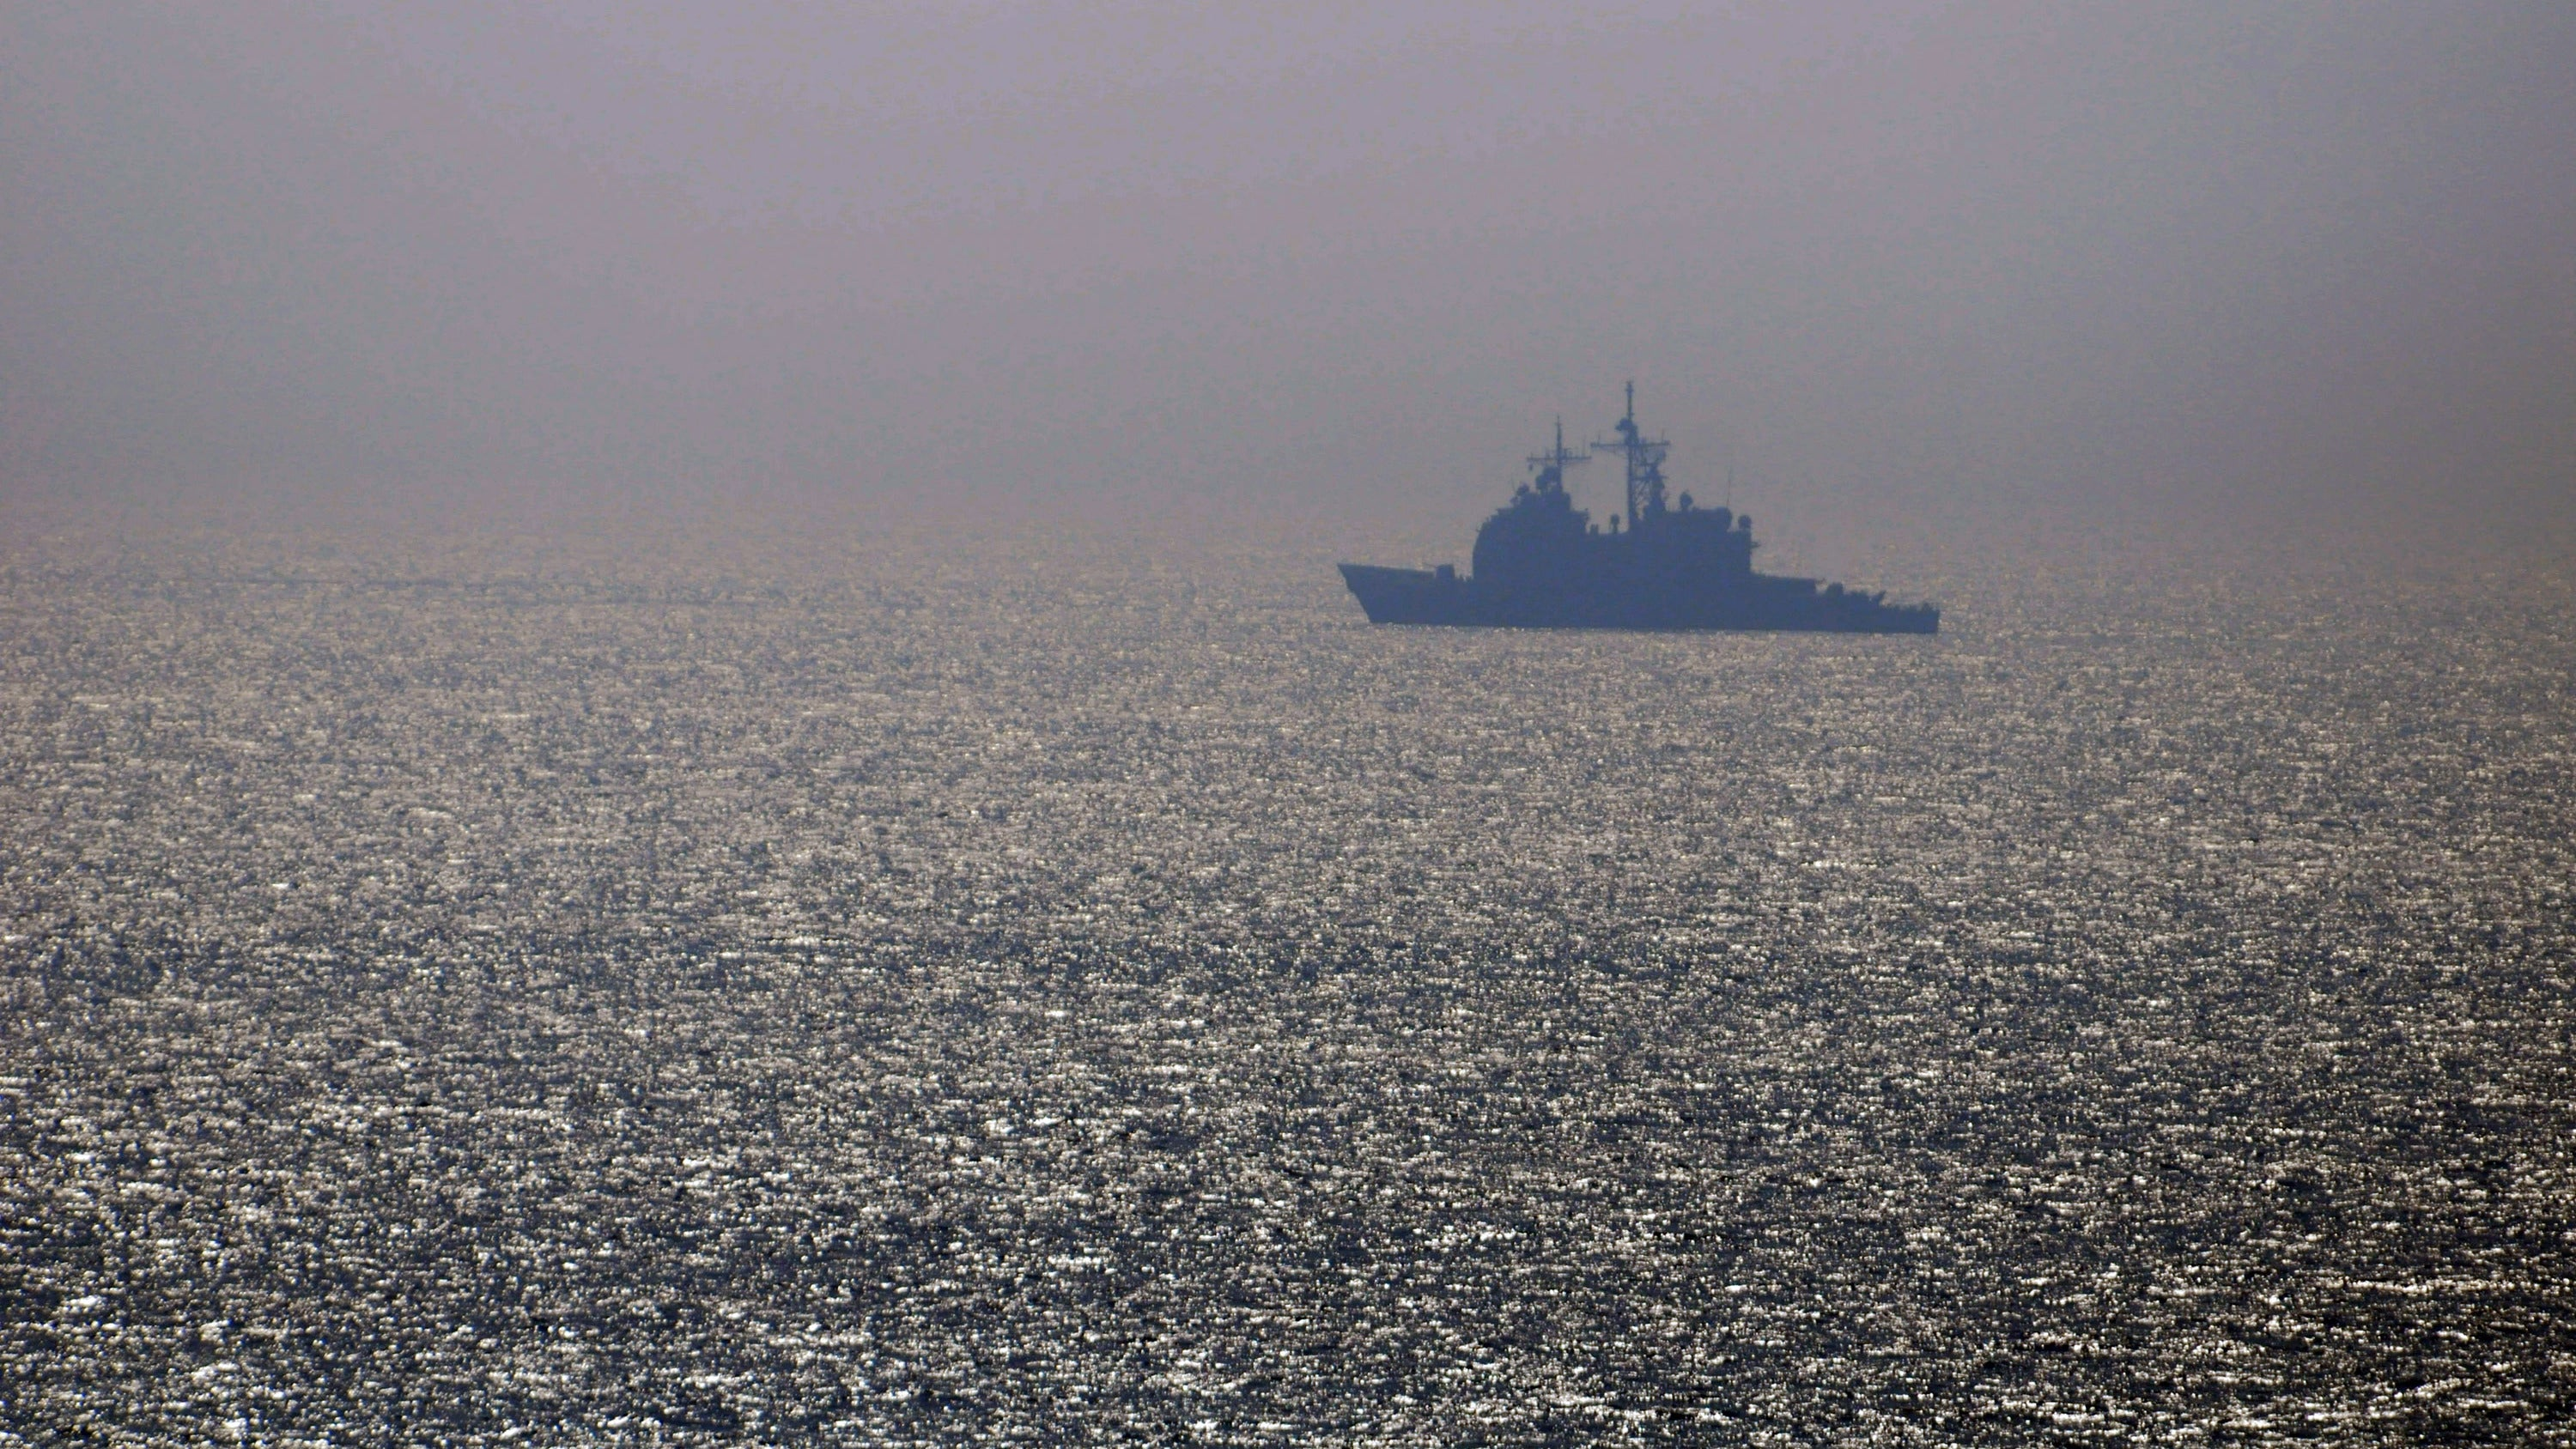 The Arabian Sea's Suffocating 'Dead Zone' Is Even Larger Than We Imagined